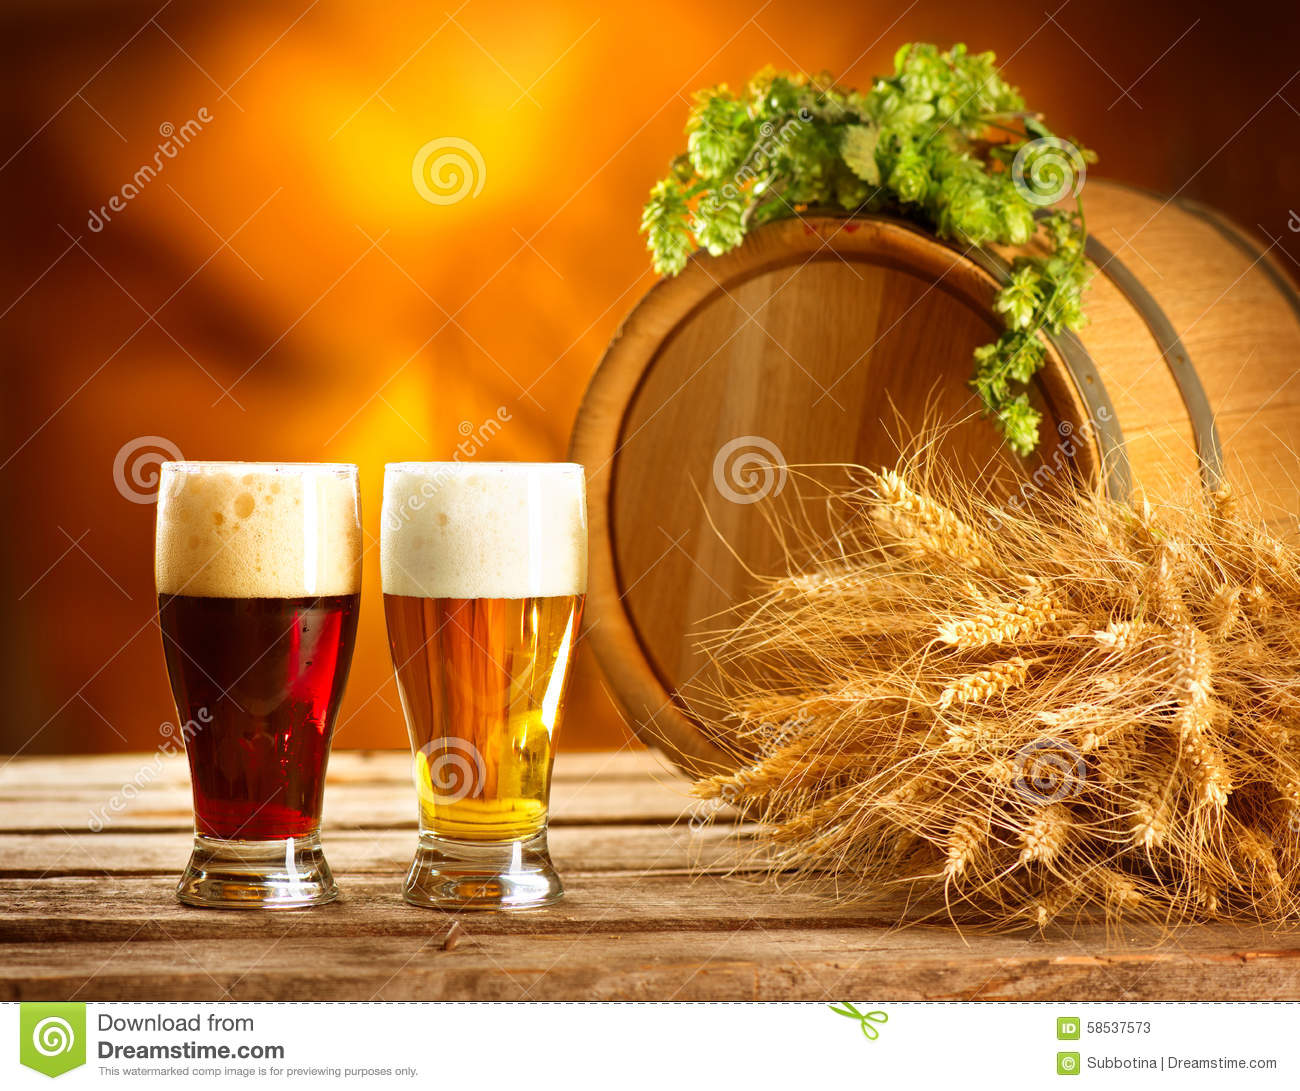 beer production essay Free essay: boston beer company performance and competition boston beer's sales performance triumphs over its leading two competitors, redhook ale brewery.